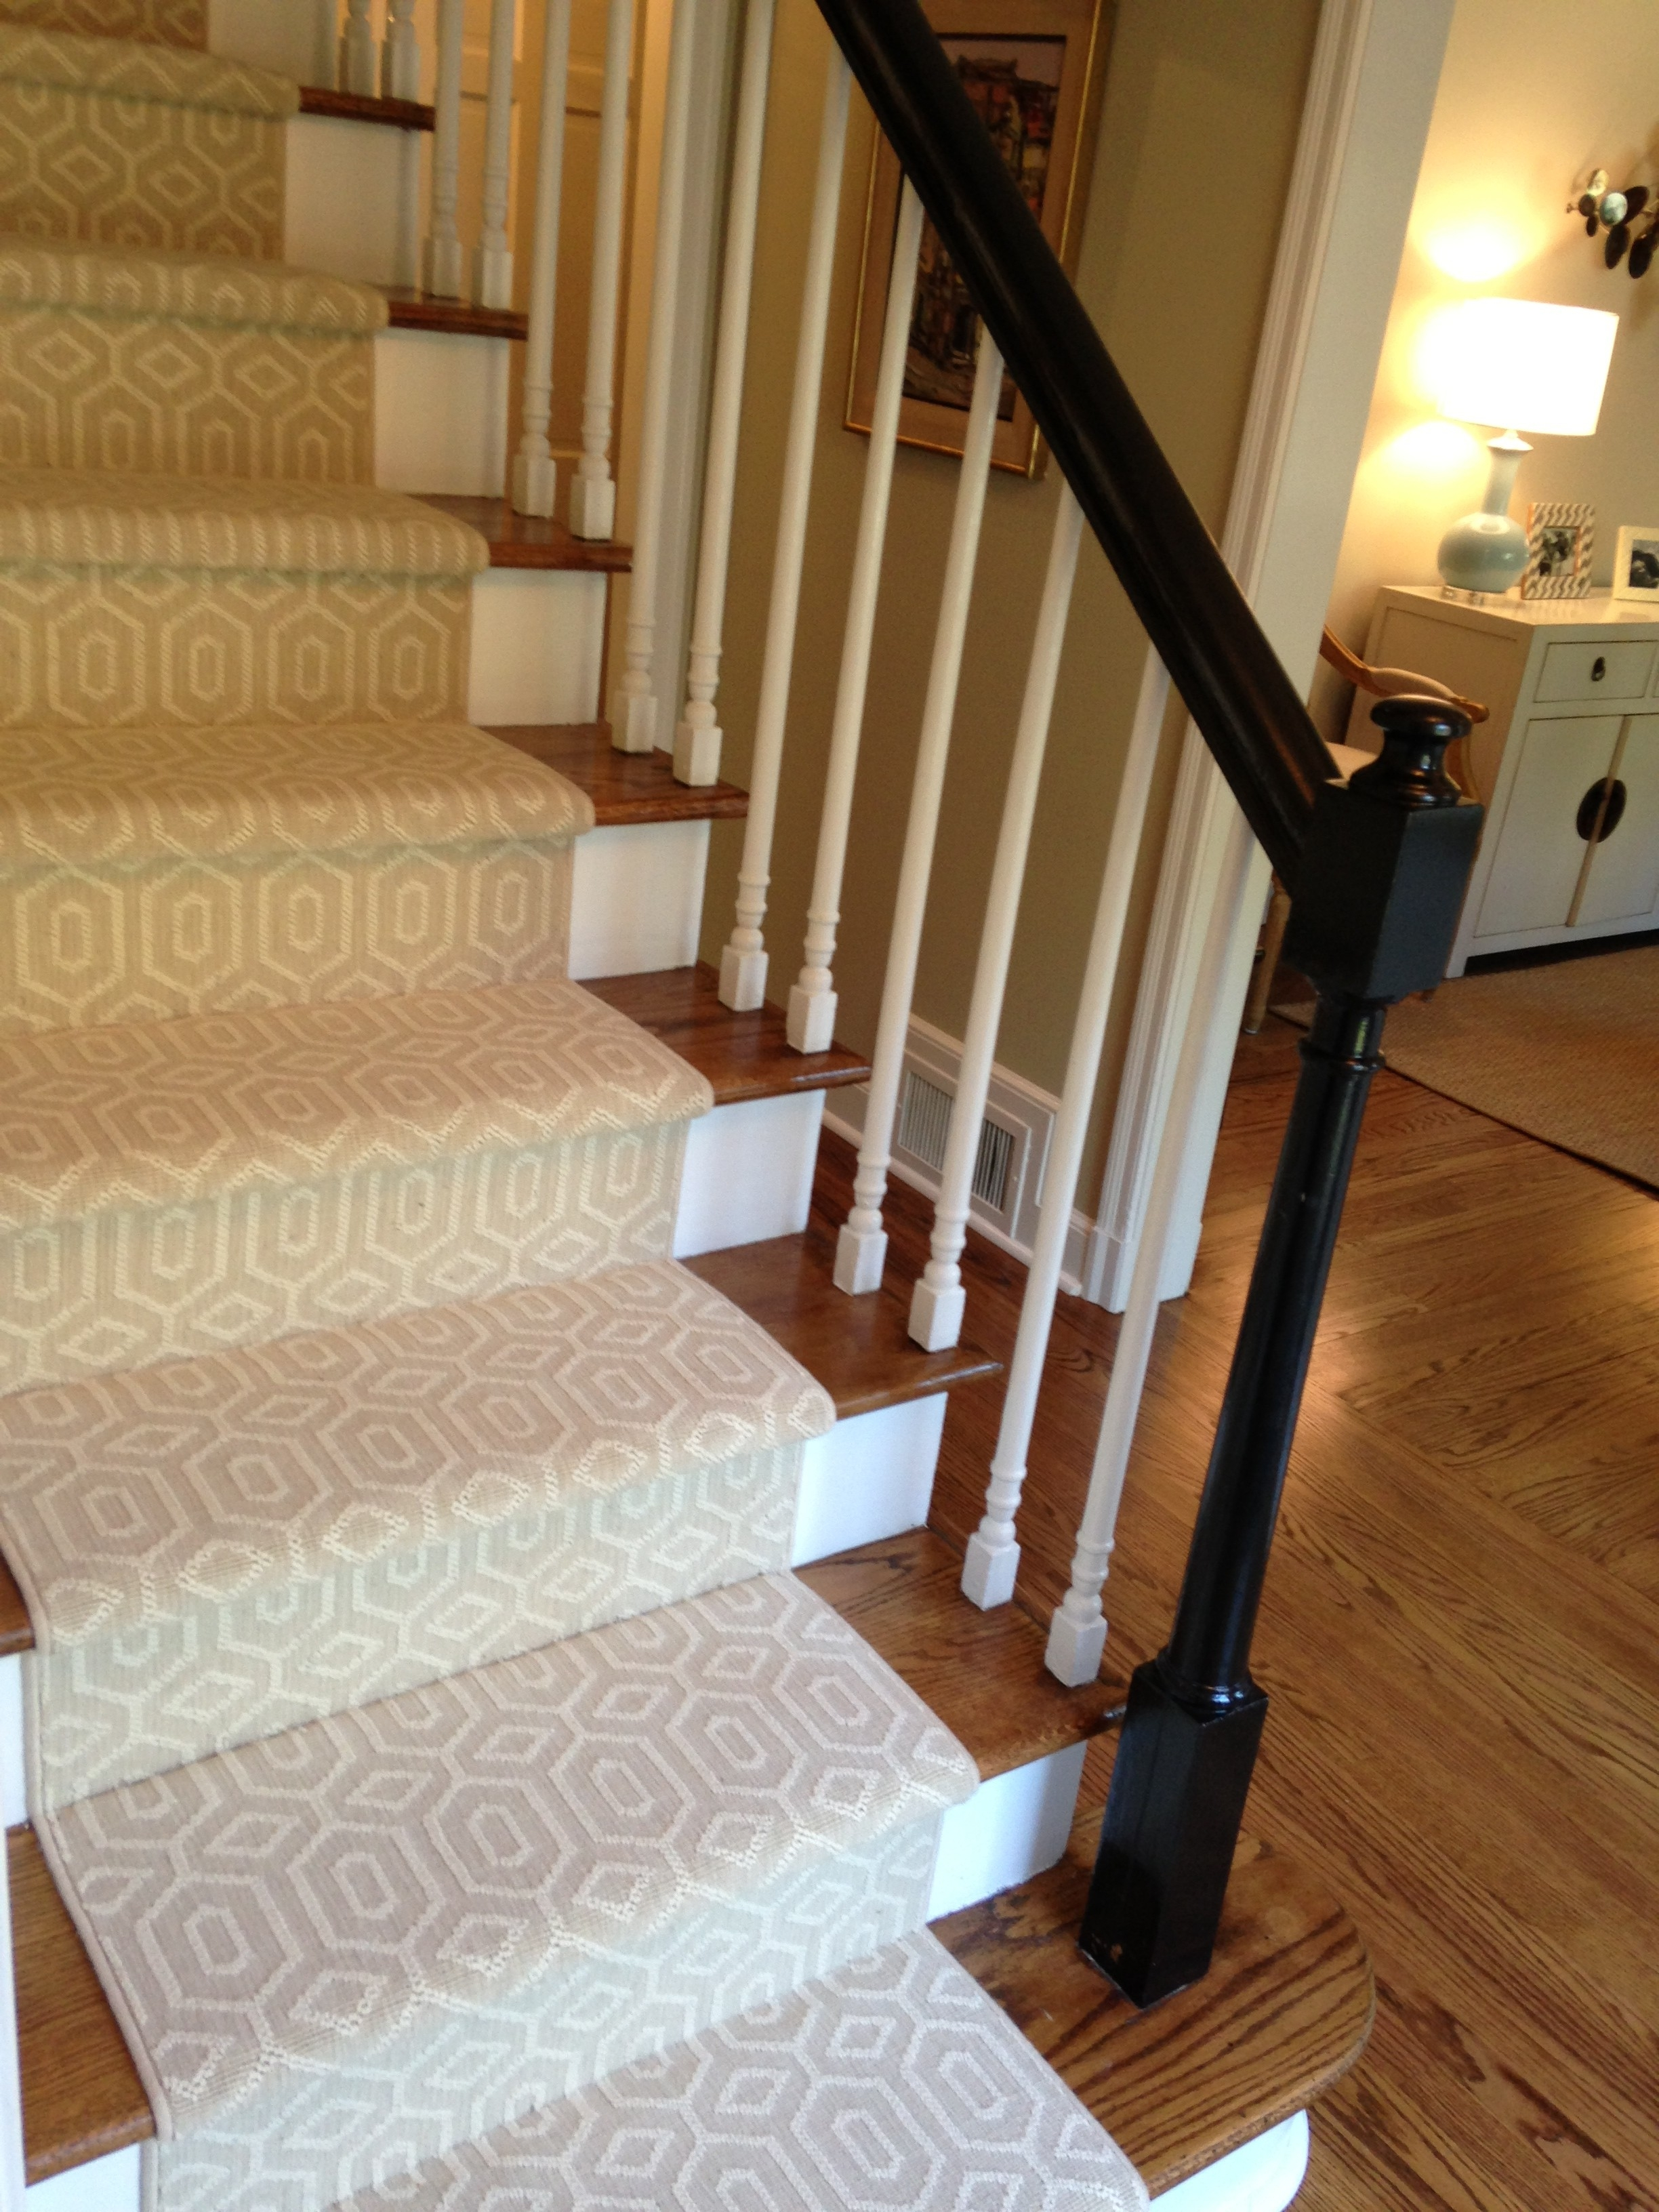 Popular Photo of Rug Runners For Stairs